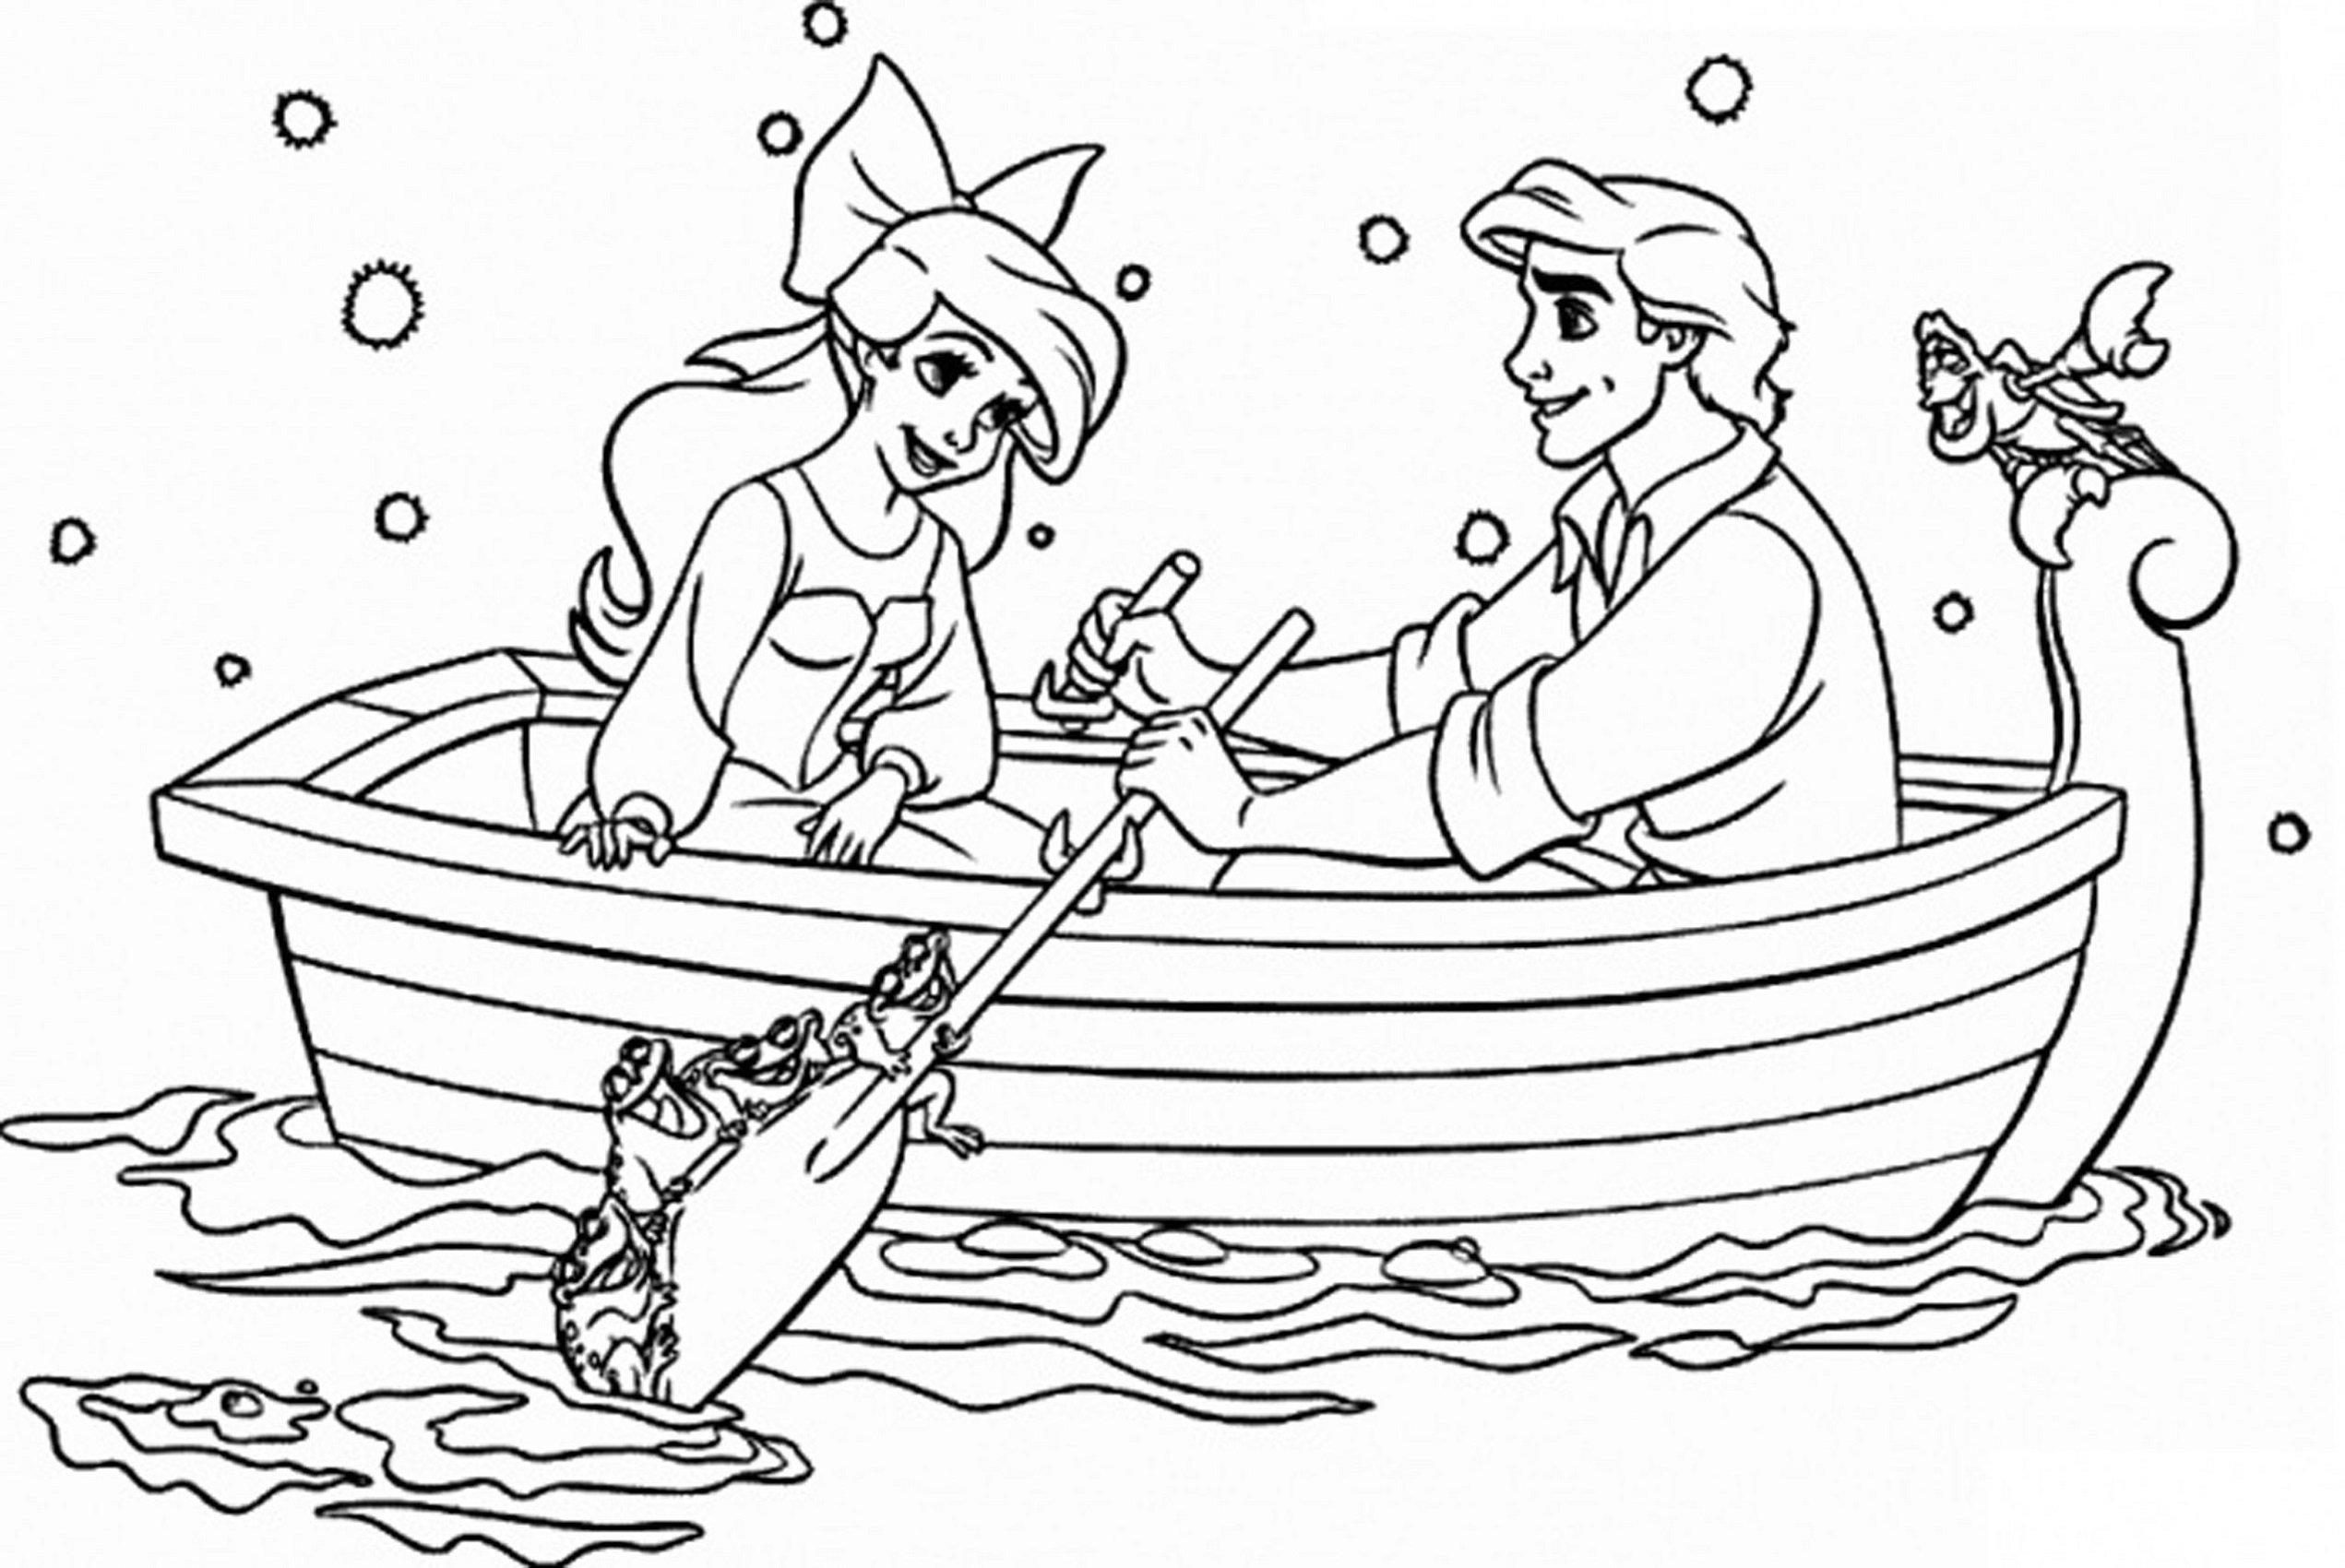 printable coloring pages for kids sail on the lake